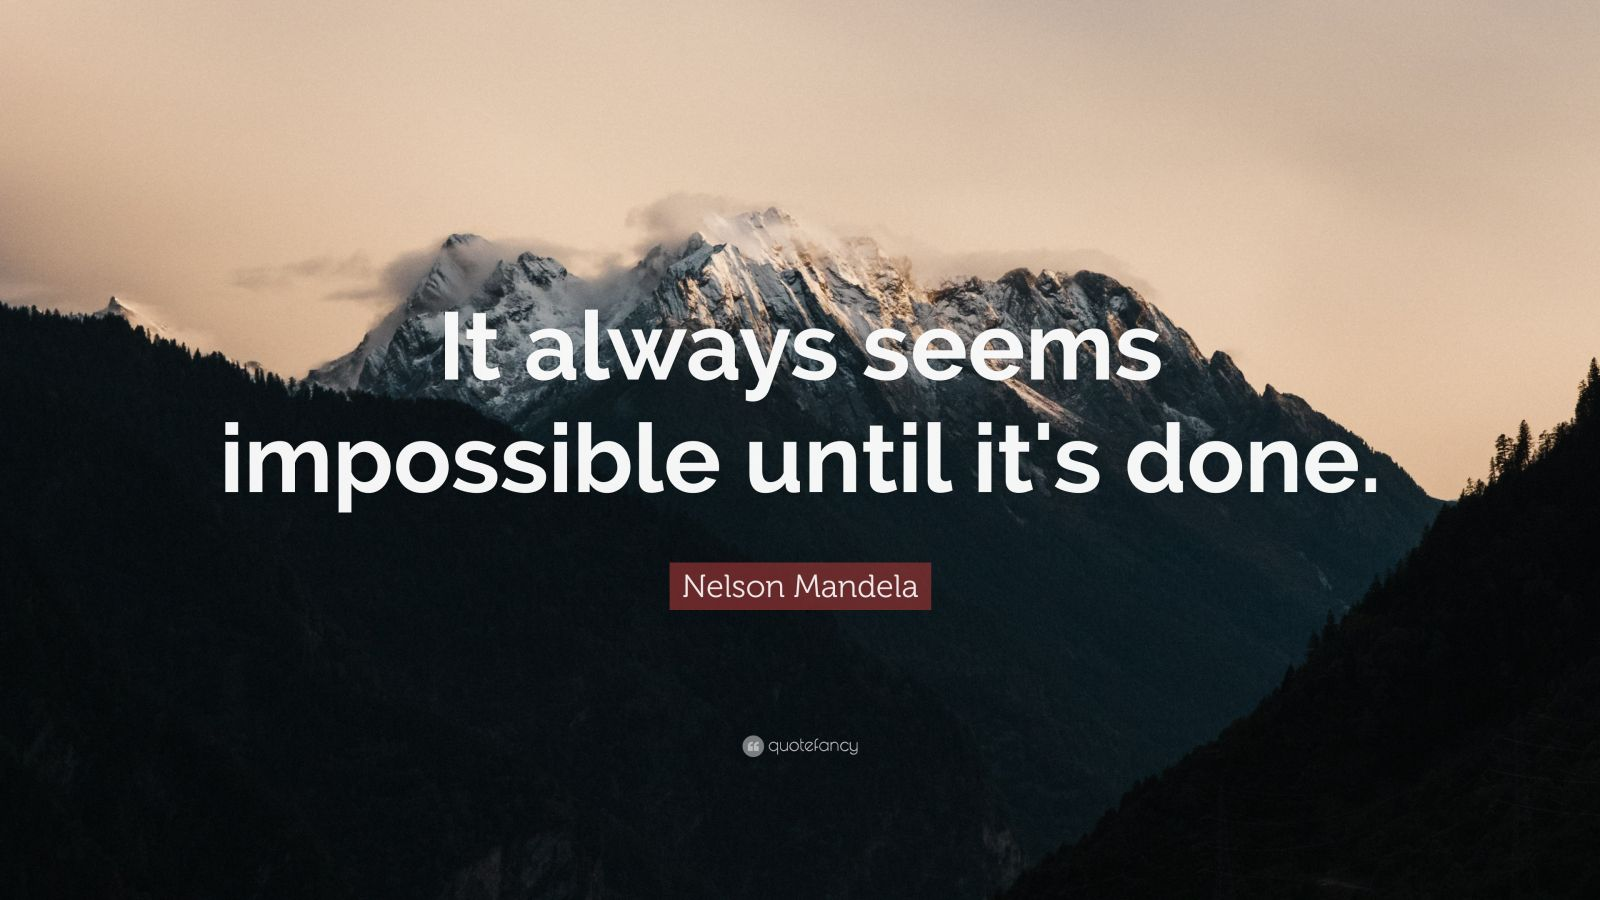 Nelson Mandela Quotes 100 Wallpapers Quotefancy